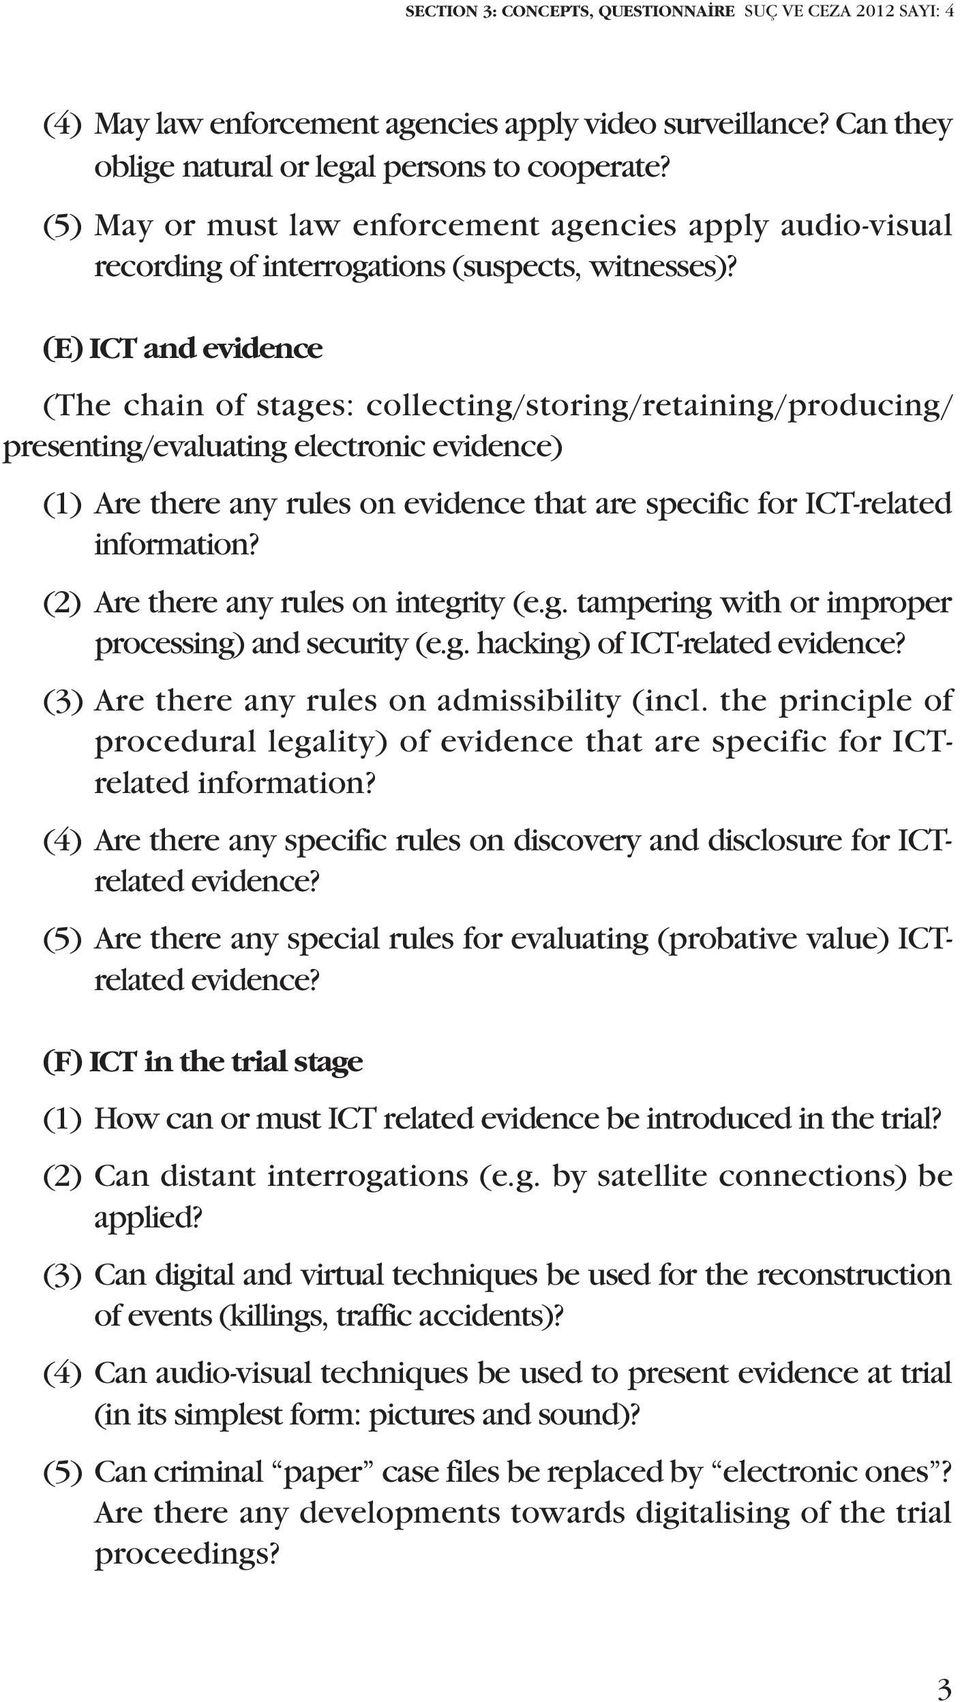 (E) ICT and evidence (The chain of stages: collecting/storing/retaining/producing/ presenting/evaluating electronic evidence) (1) Are there any rules on evidence that are specific for ICT-related